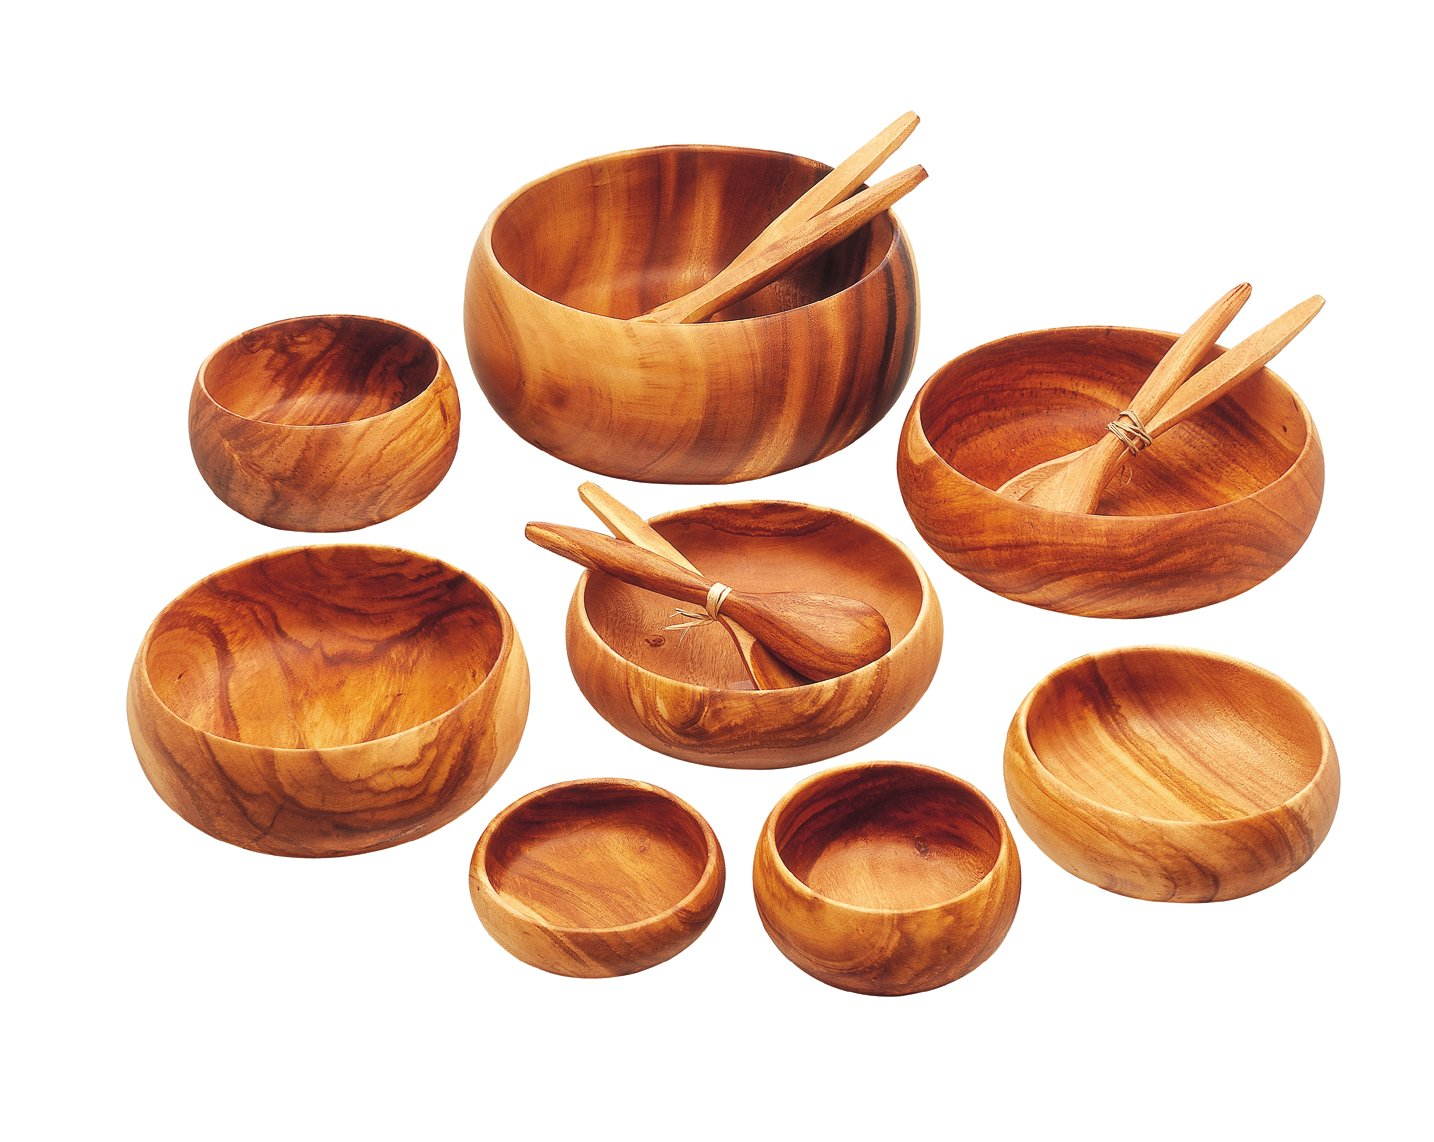 Pacific Merchants Acaciaware 10- by 6- by 2-Inch Acacia Wood Rectangle Serving/Salad Bowl by Pacific Merchants Trading (Image #11)